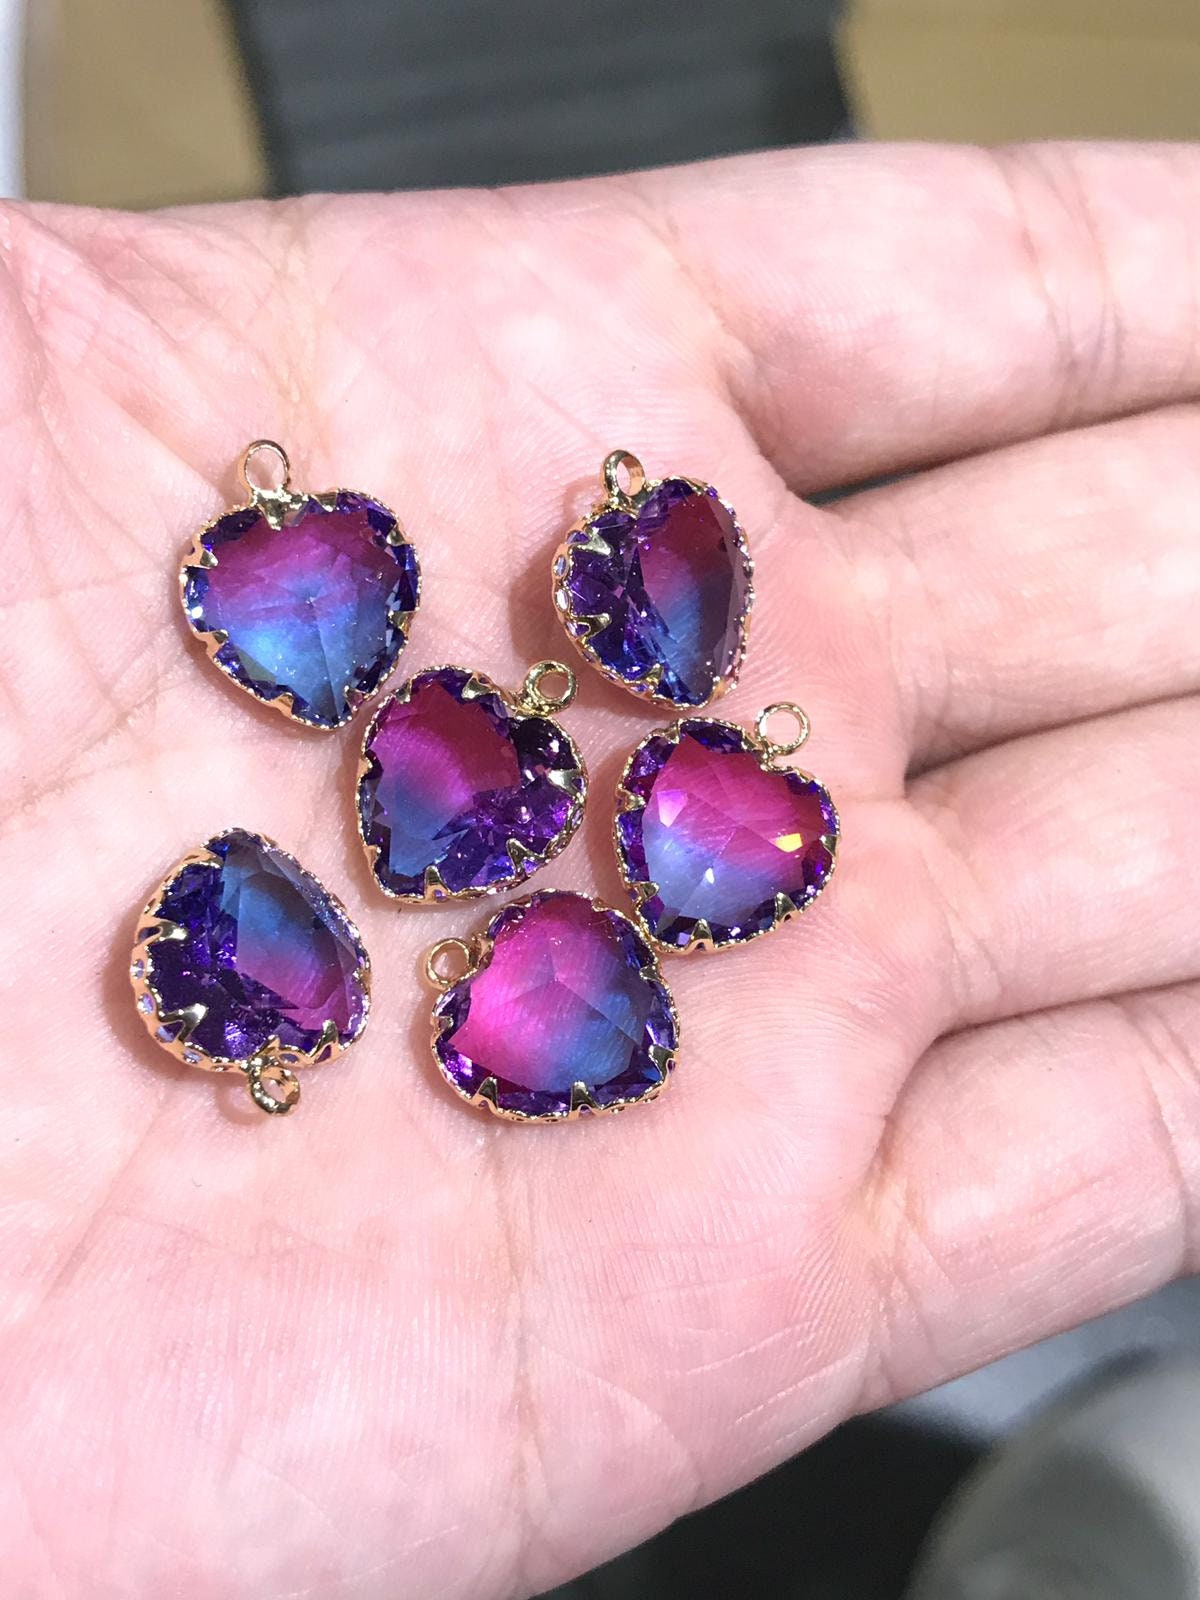 Pink Hearts Pendant 16x13mm Glass Jewelry making earring making Component crystal Charms gold plated Findings Craft Supplies ys1106-5